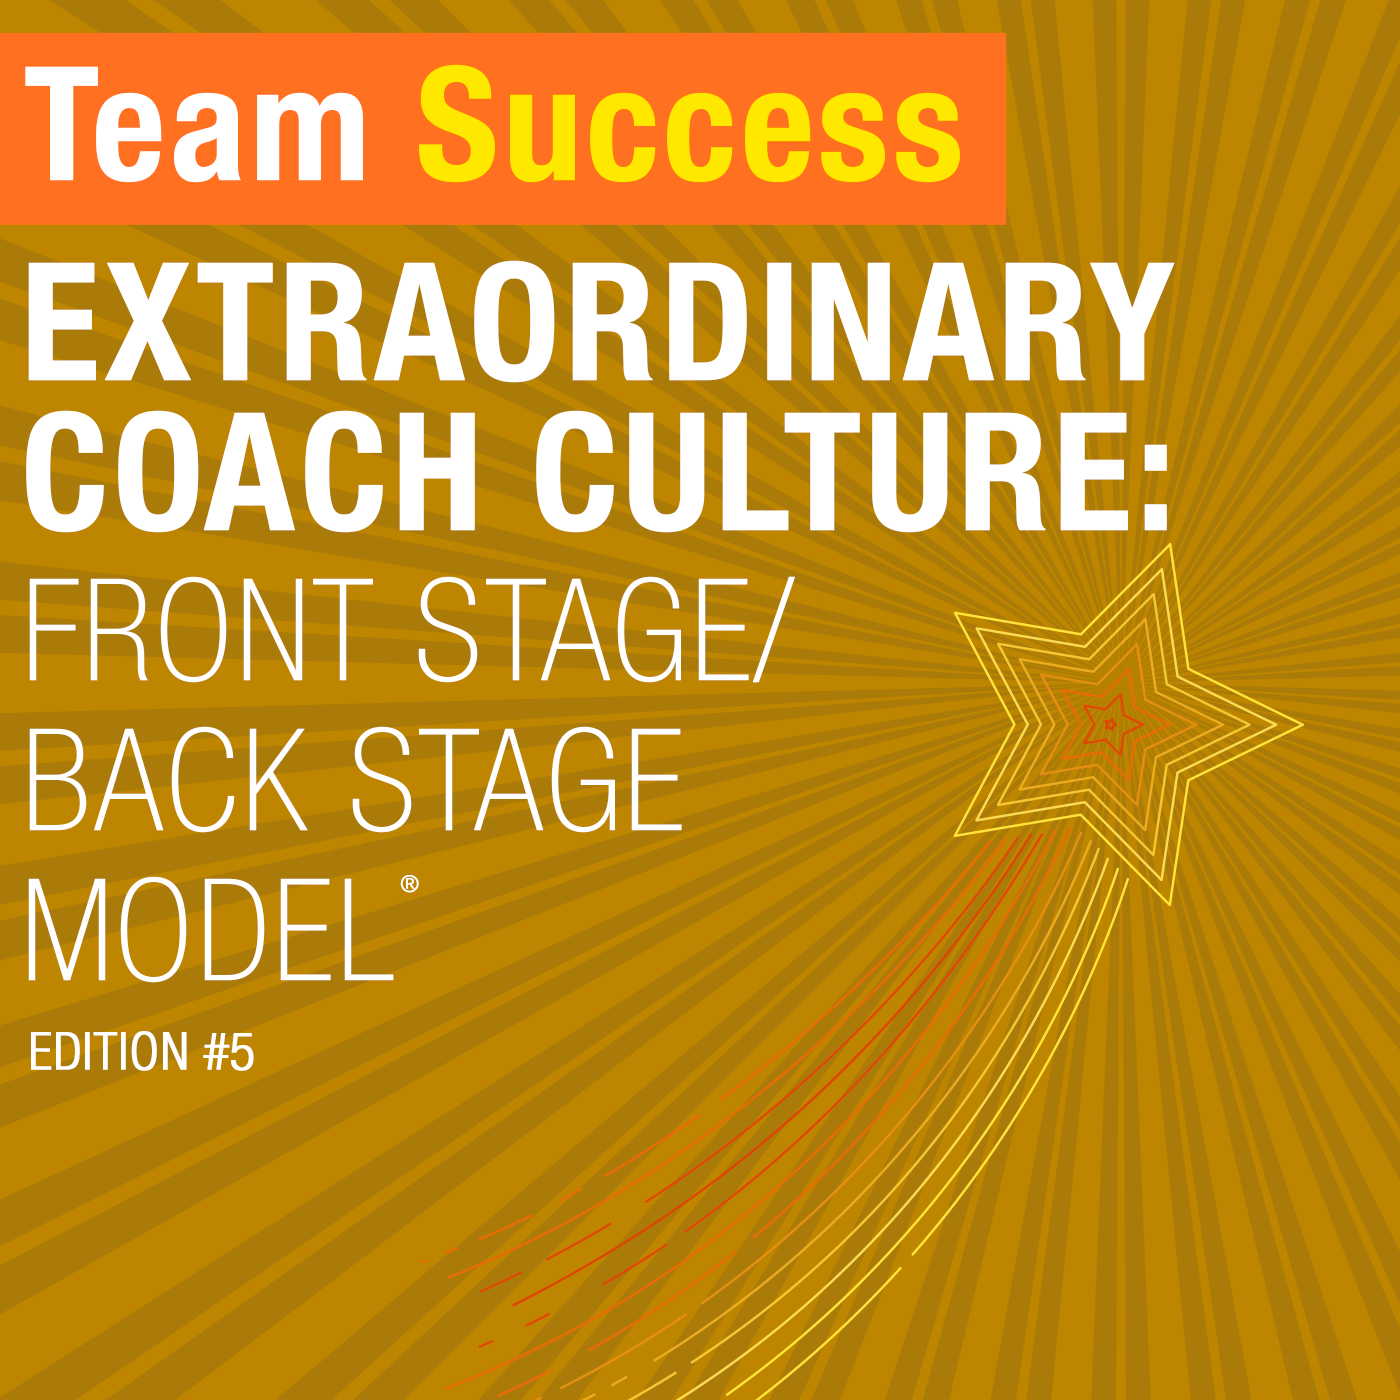 Extraordinary Coach Culture: Front Stage/Back Stage Model